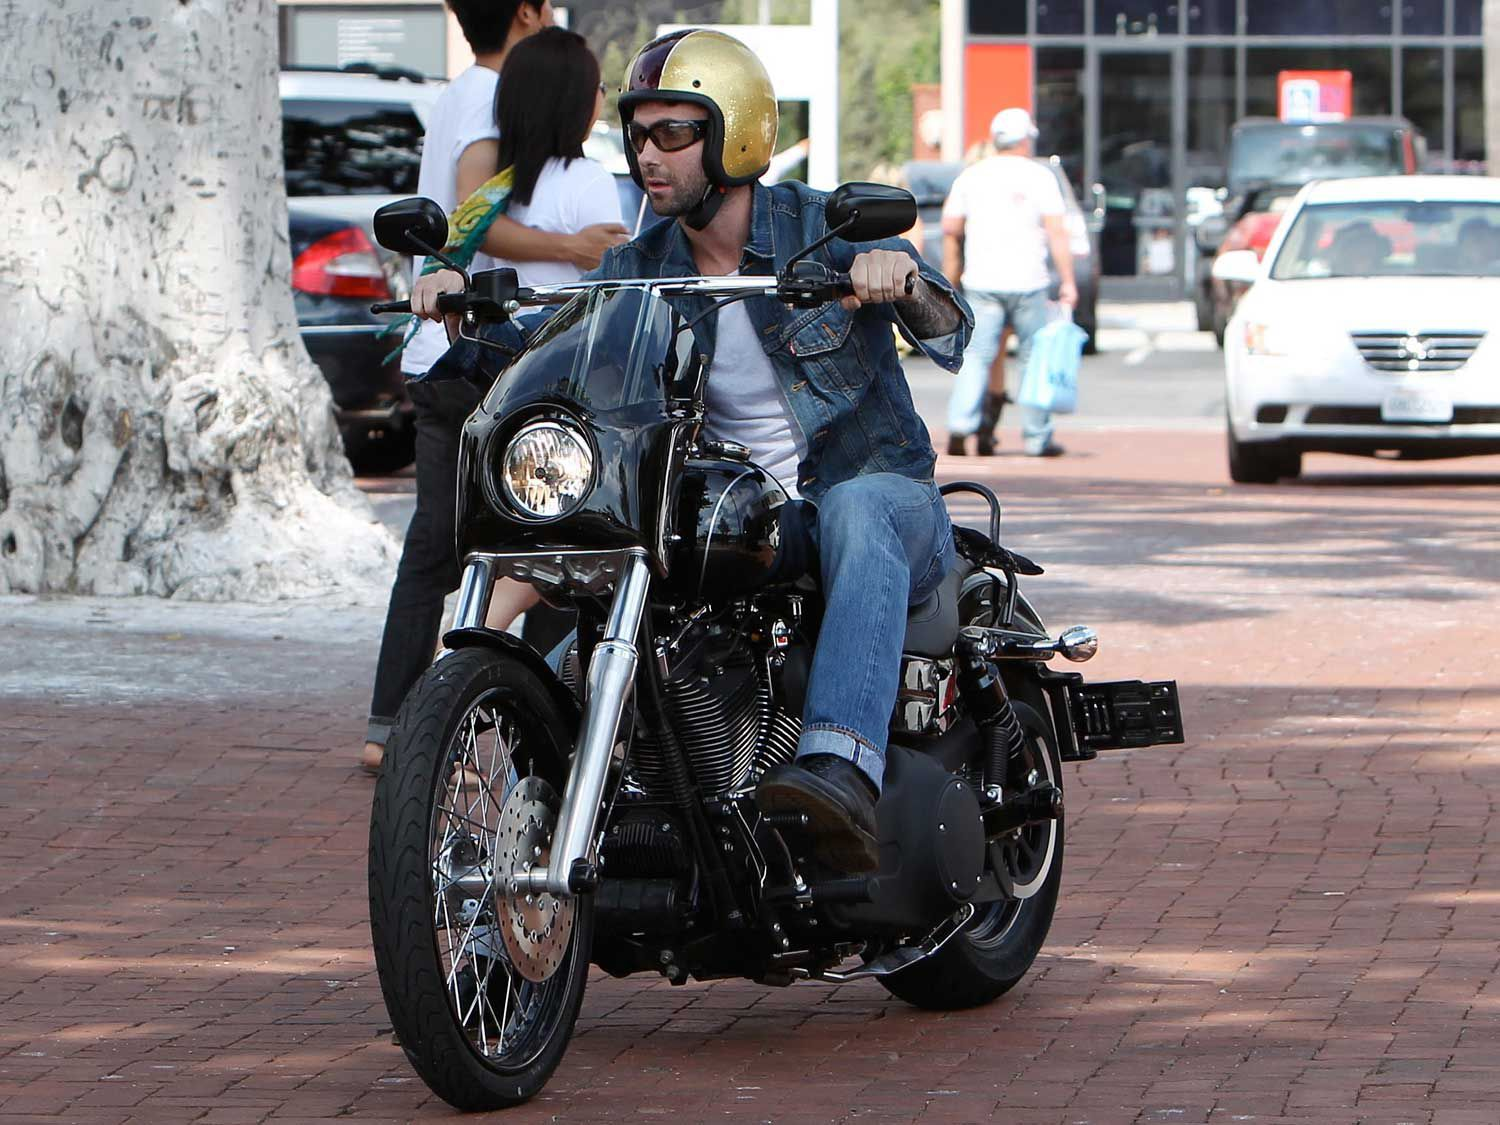 """<strong>Maroon 5 Singer Adam Levine:</strong> Did you know the Maroon 5 singer and """"The Voice"""" host swings a leg over two wheels? You can find quite a few videos of him taking his motorcycles for rides in Hollywood. This shot is of him in Malibu on a <a   href=""""https://www.motorcyclistonline.com/new-harley-davidson-motorcycles/"""">Harley-Davidson</a>."""